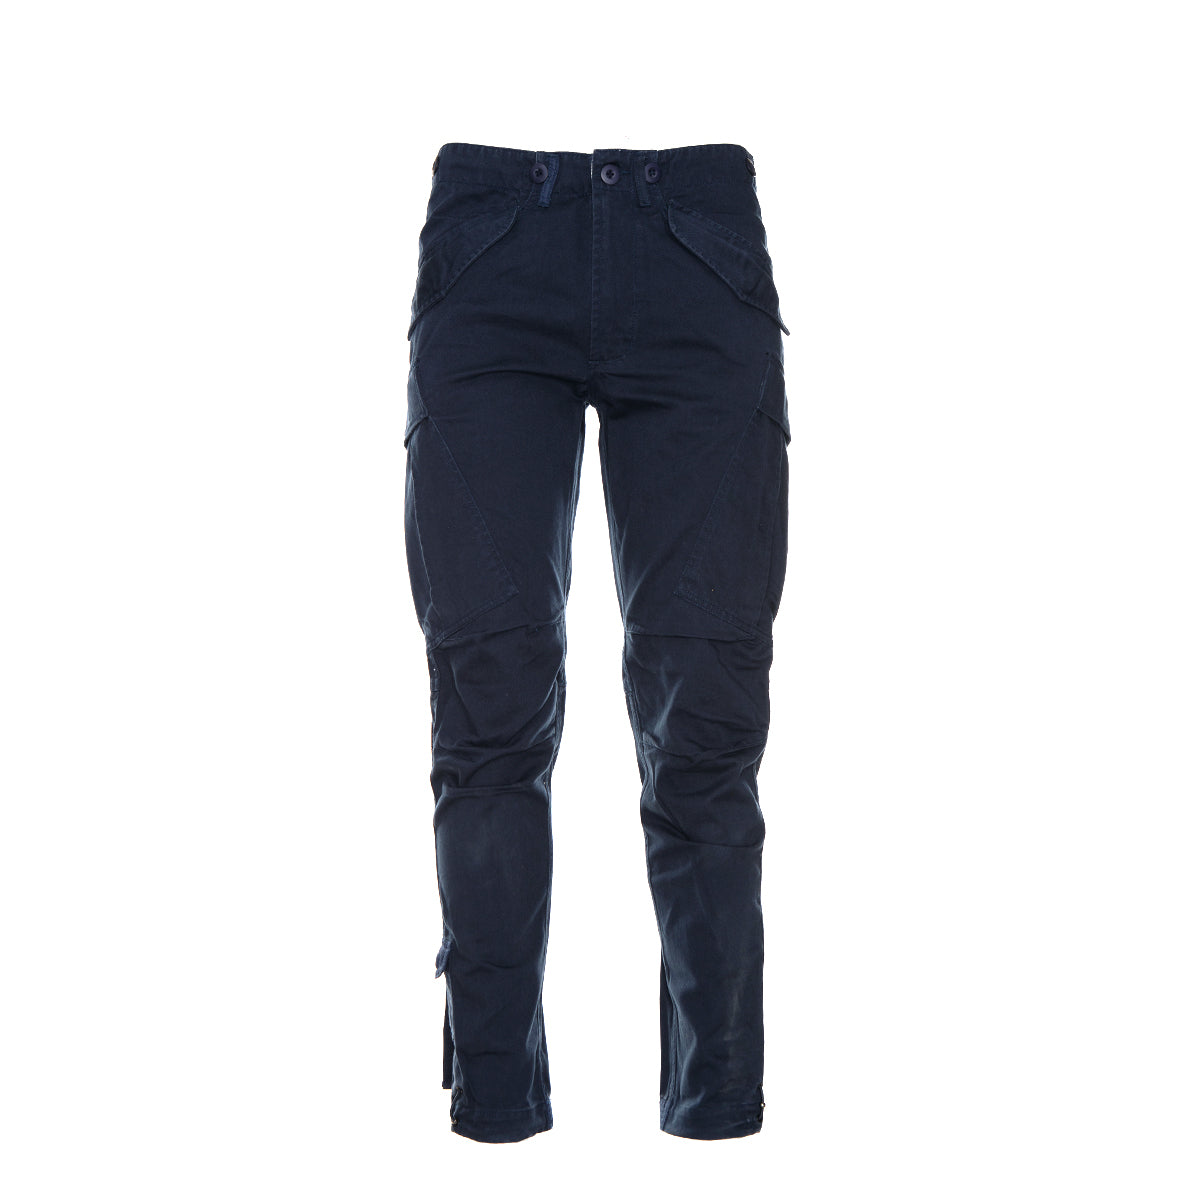 Maharishi MA65 Men's Cargo Pants Navy